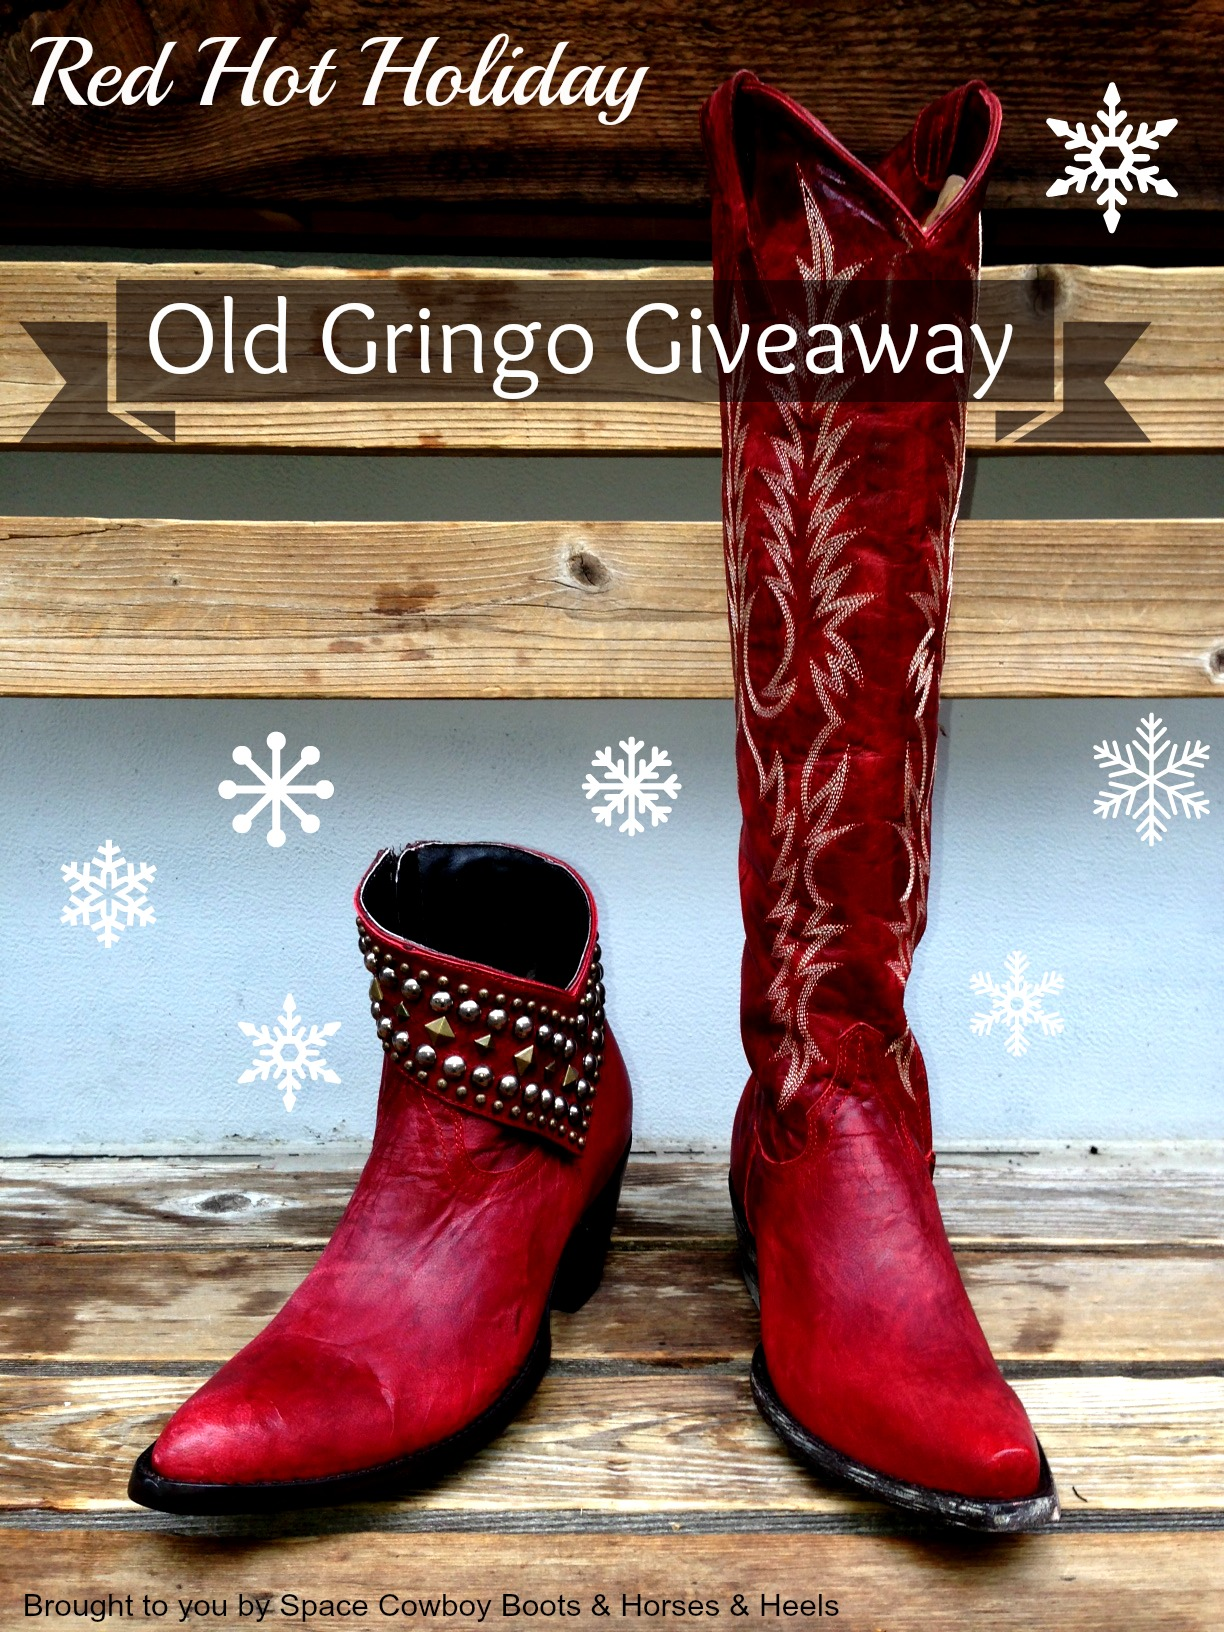 Red Hot Holiday Old Gringo Giveaway